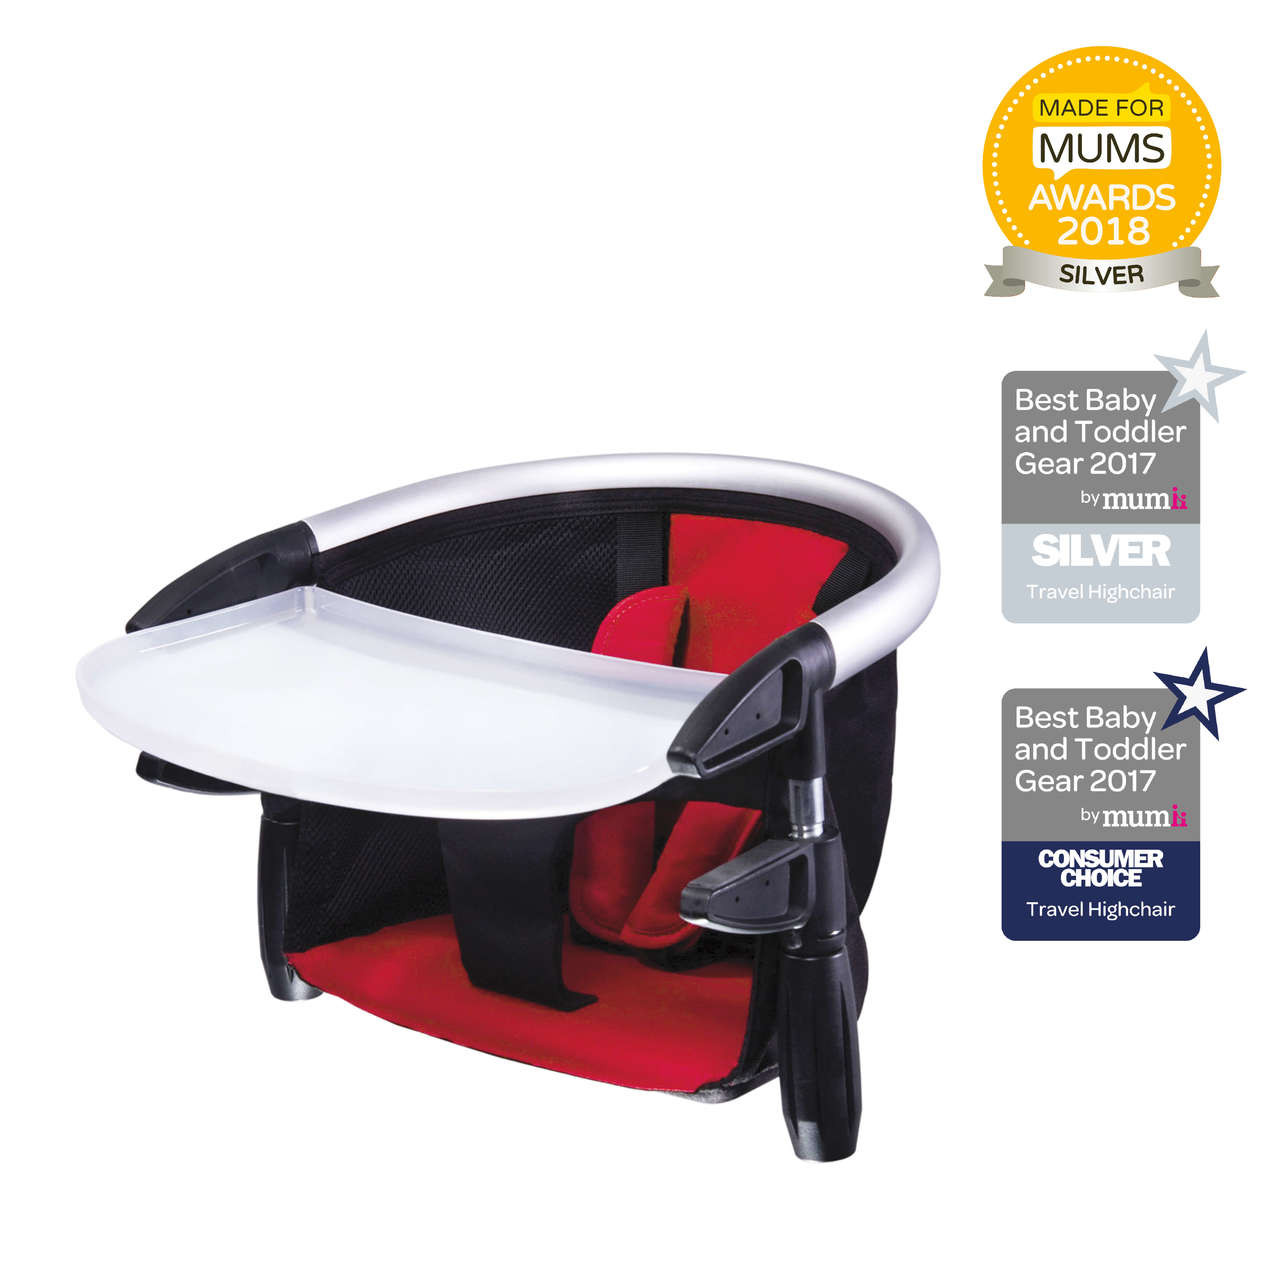 Phil & Teds Lobster Portable High Chair